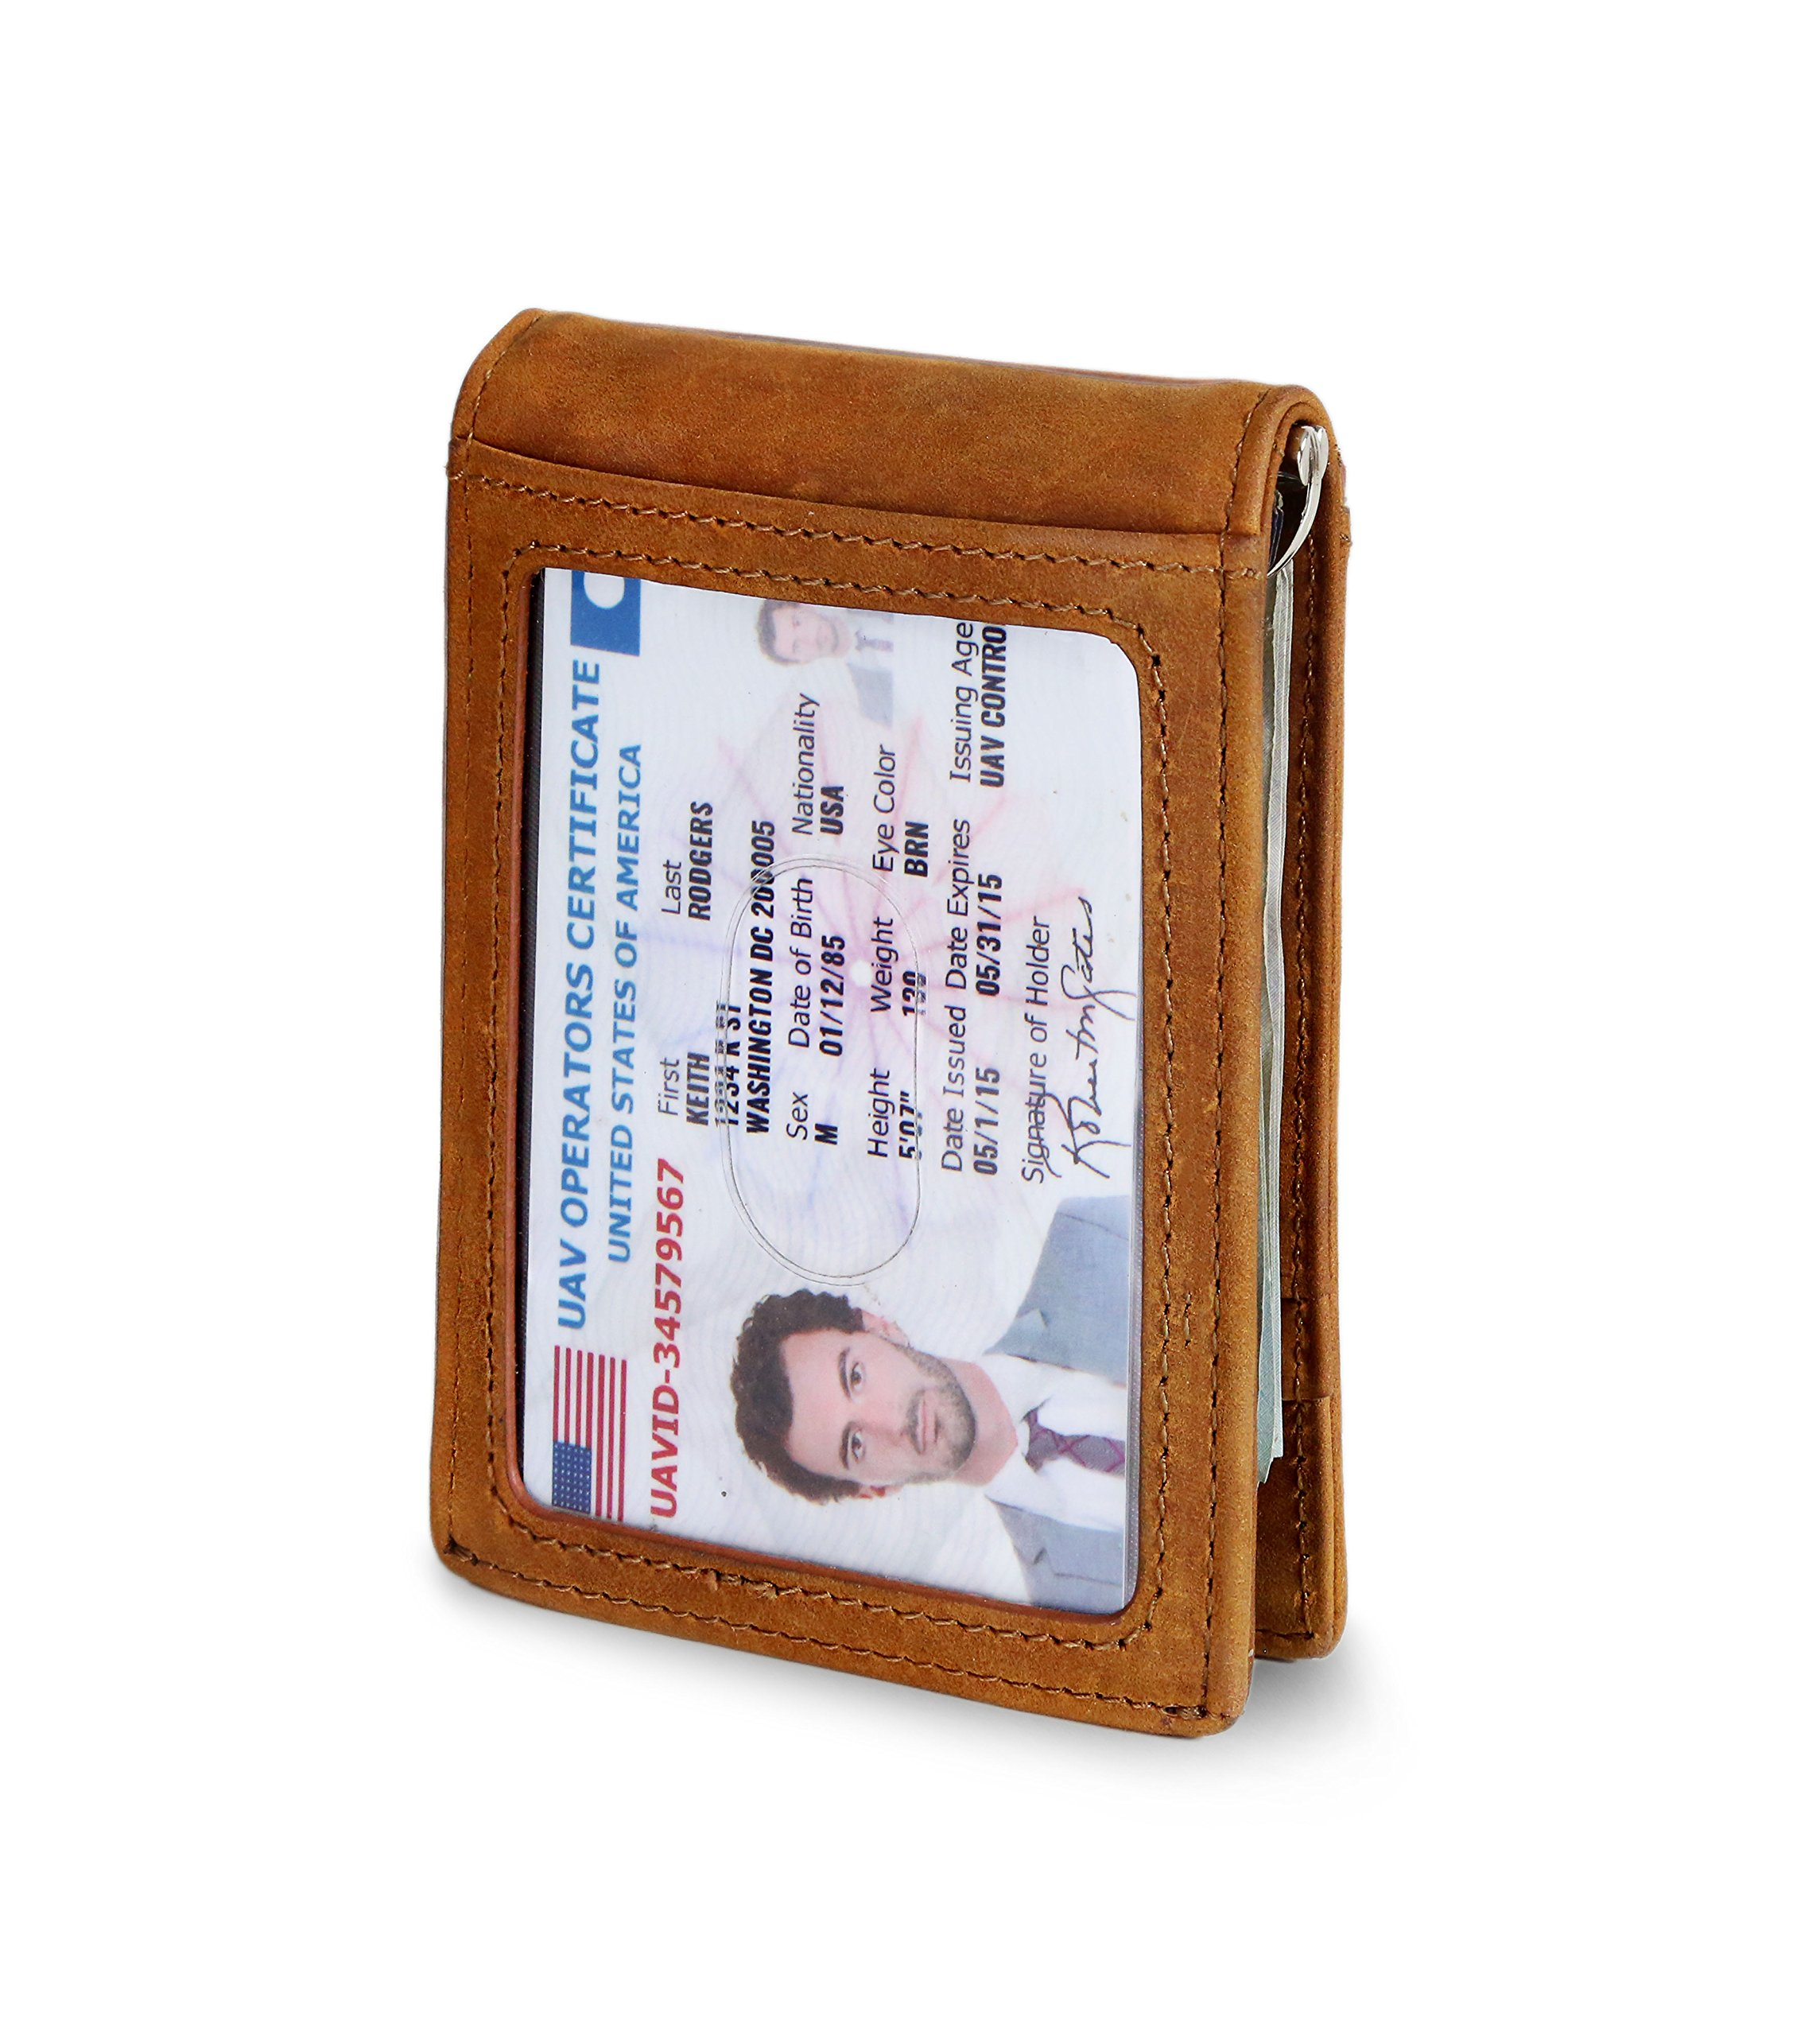 Travel Wallet RFID Blocking Bifold Slim Genuine Leather Thin Minimalist Front Pocket Mens Wallets with Money Clip - Made From Full Grain Leather (California Desert 1.S)